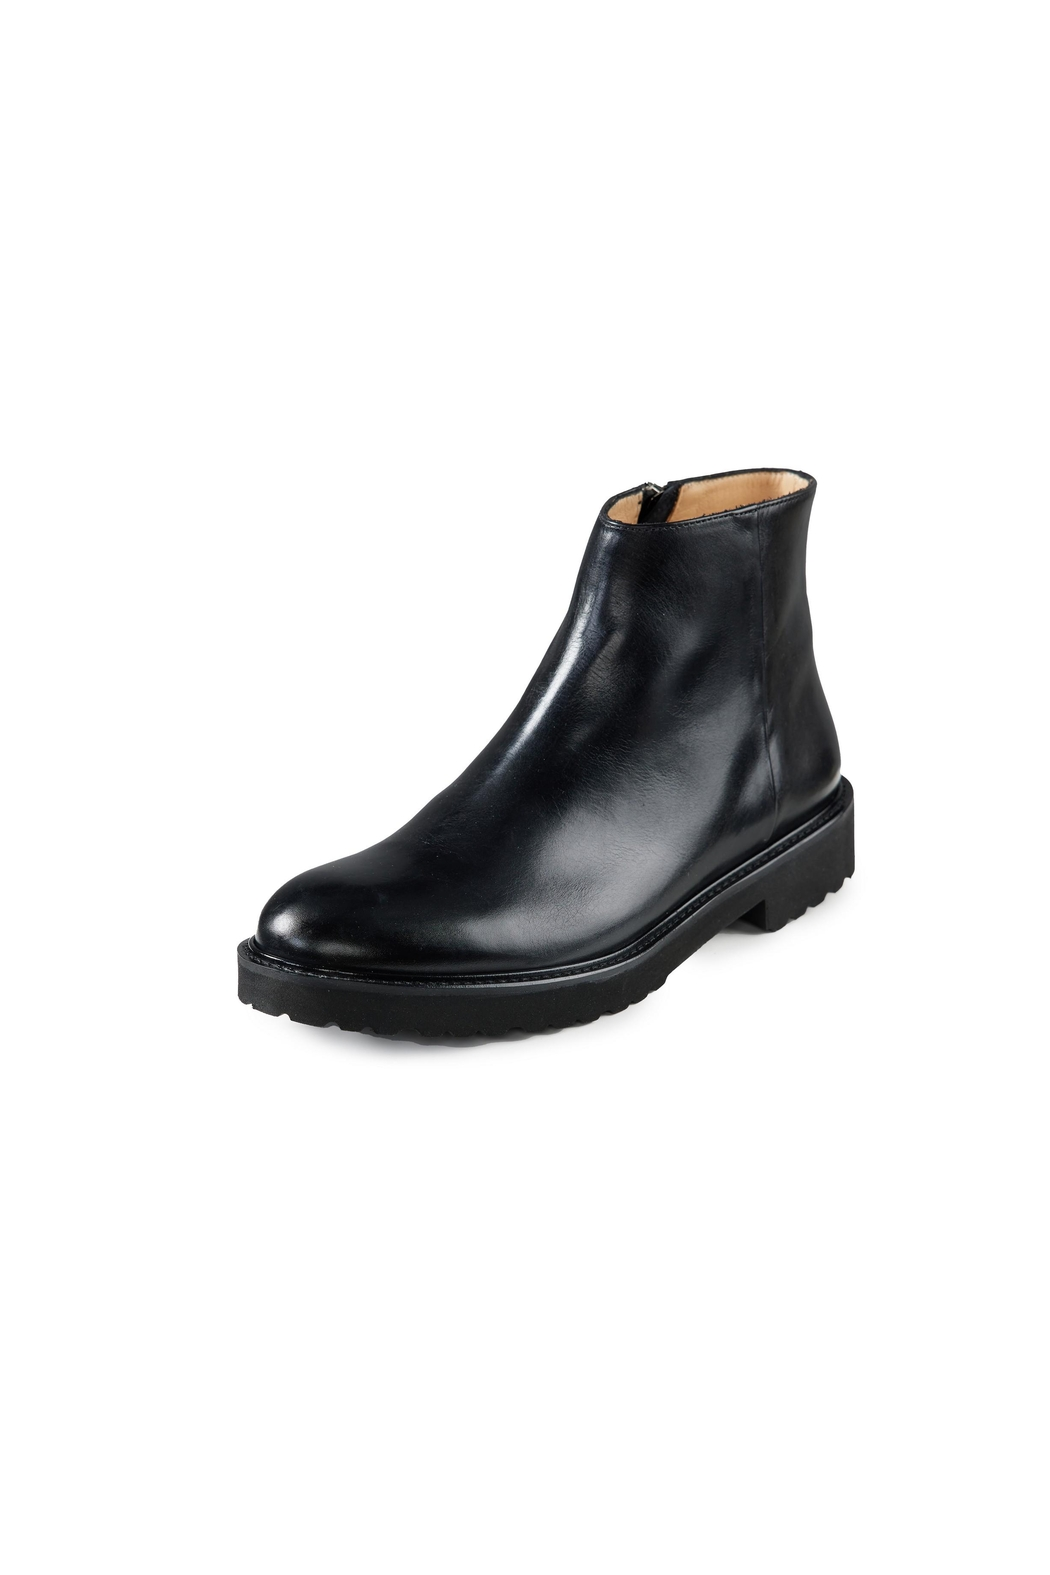 Pascucci Black Ankle Boots - Front Full Image